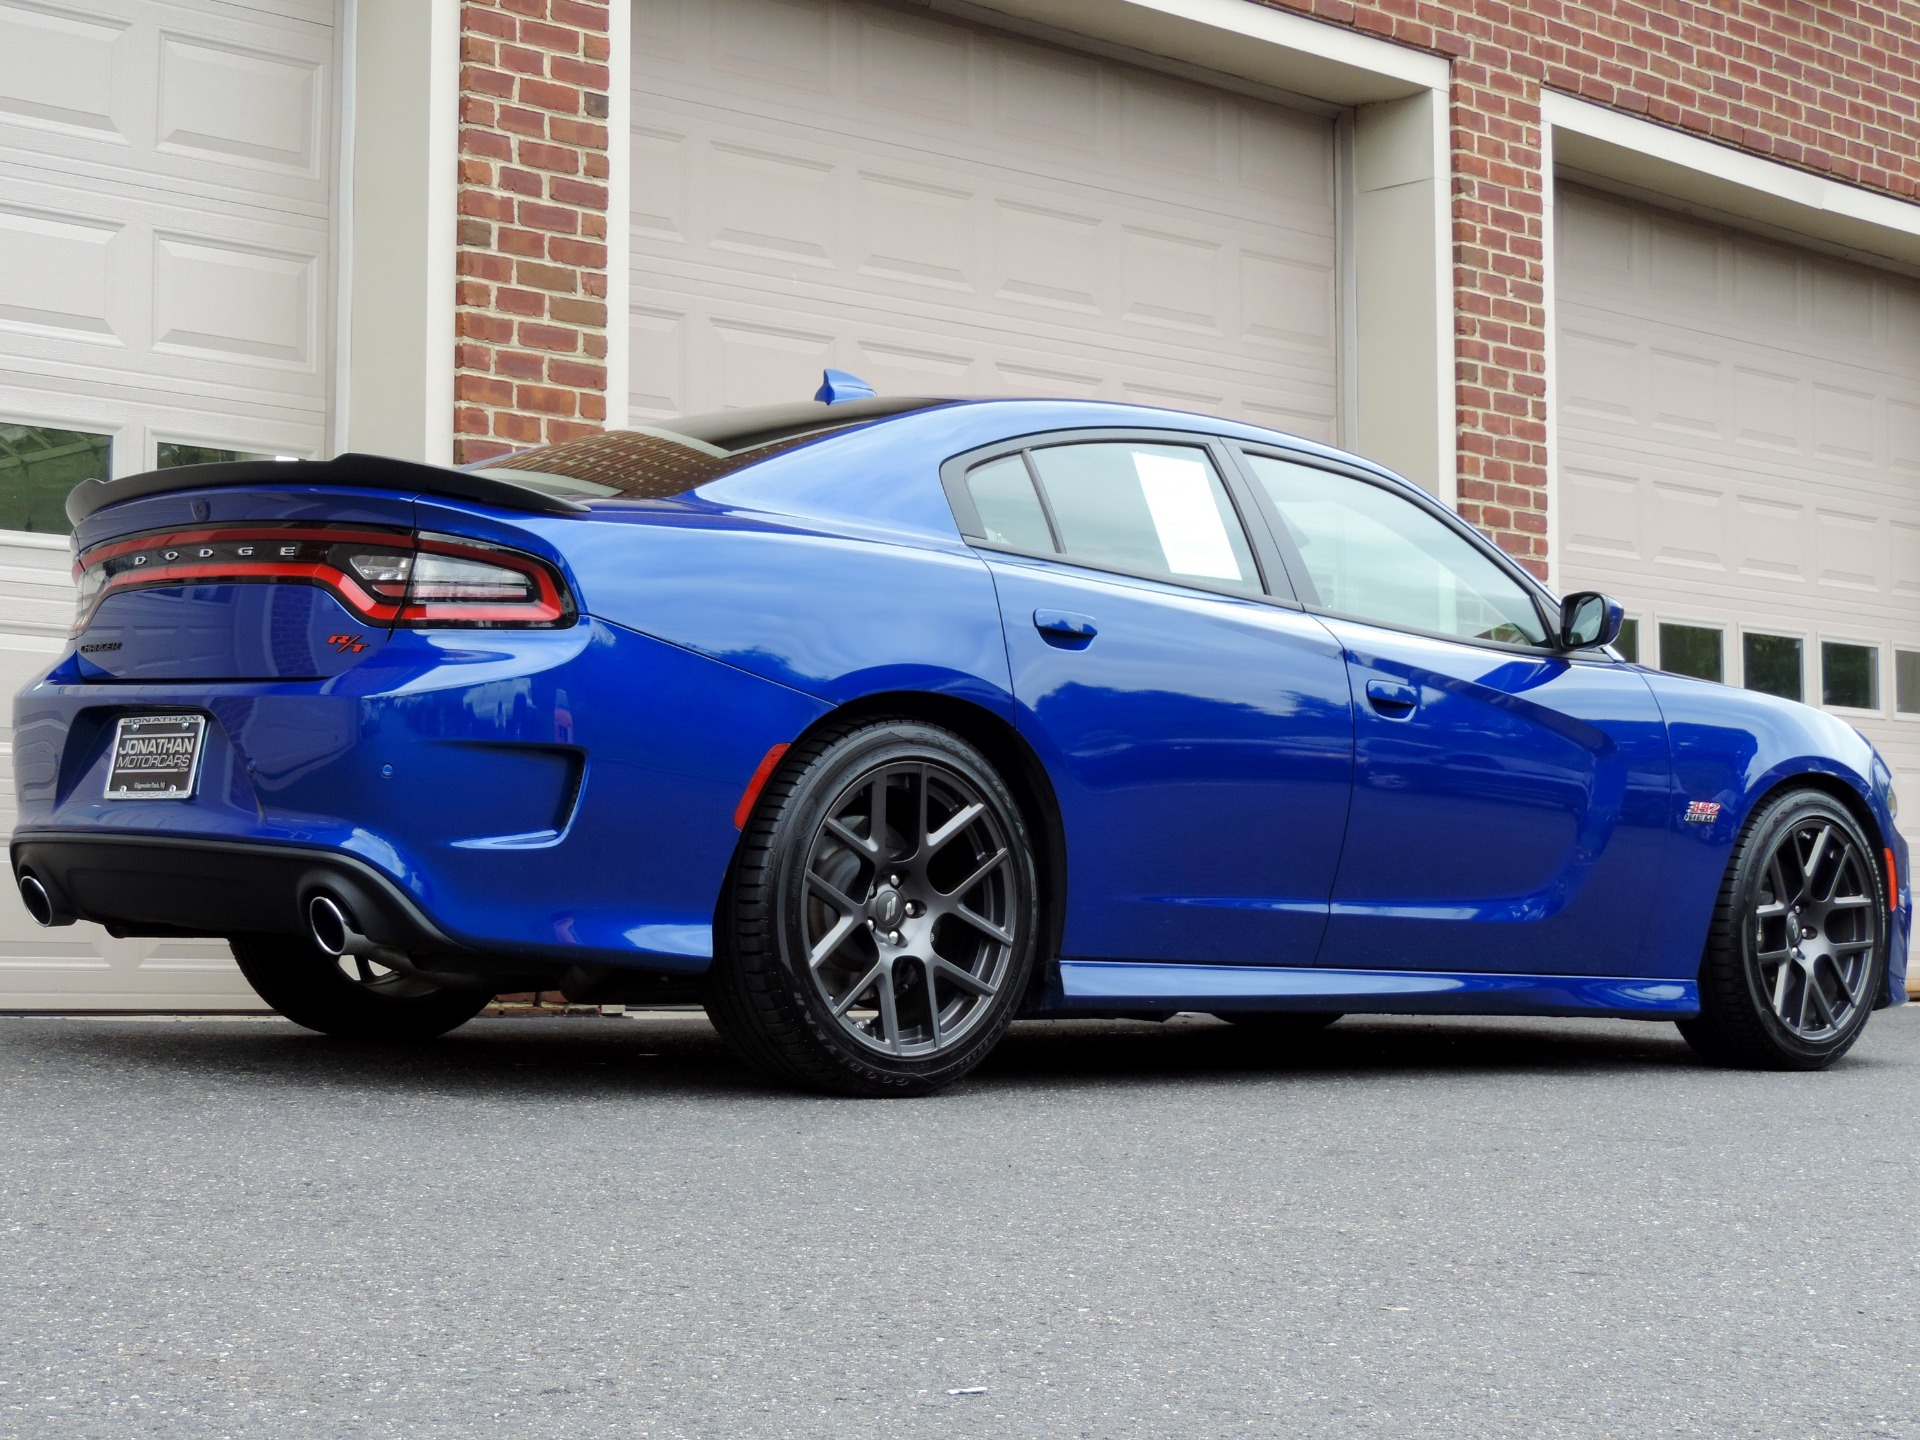 Used-2018-Dodge-Charger-R/T-Scat-Pack